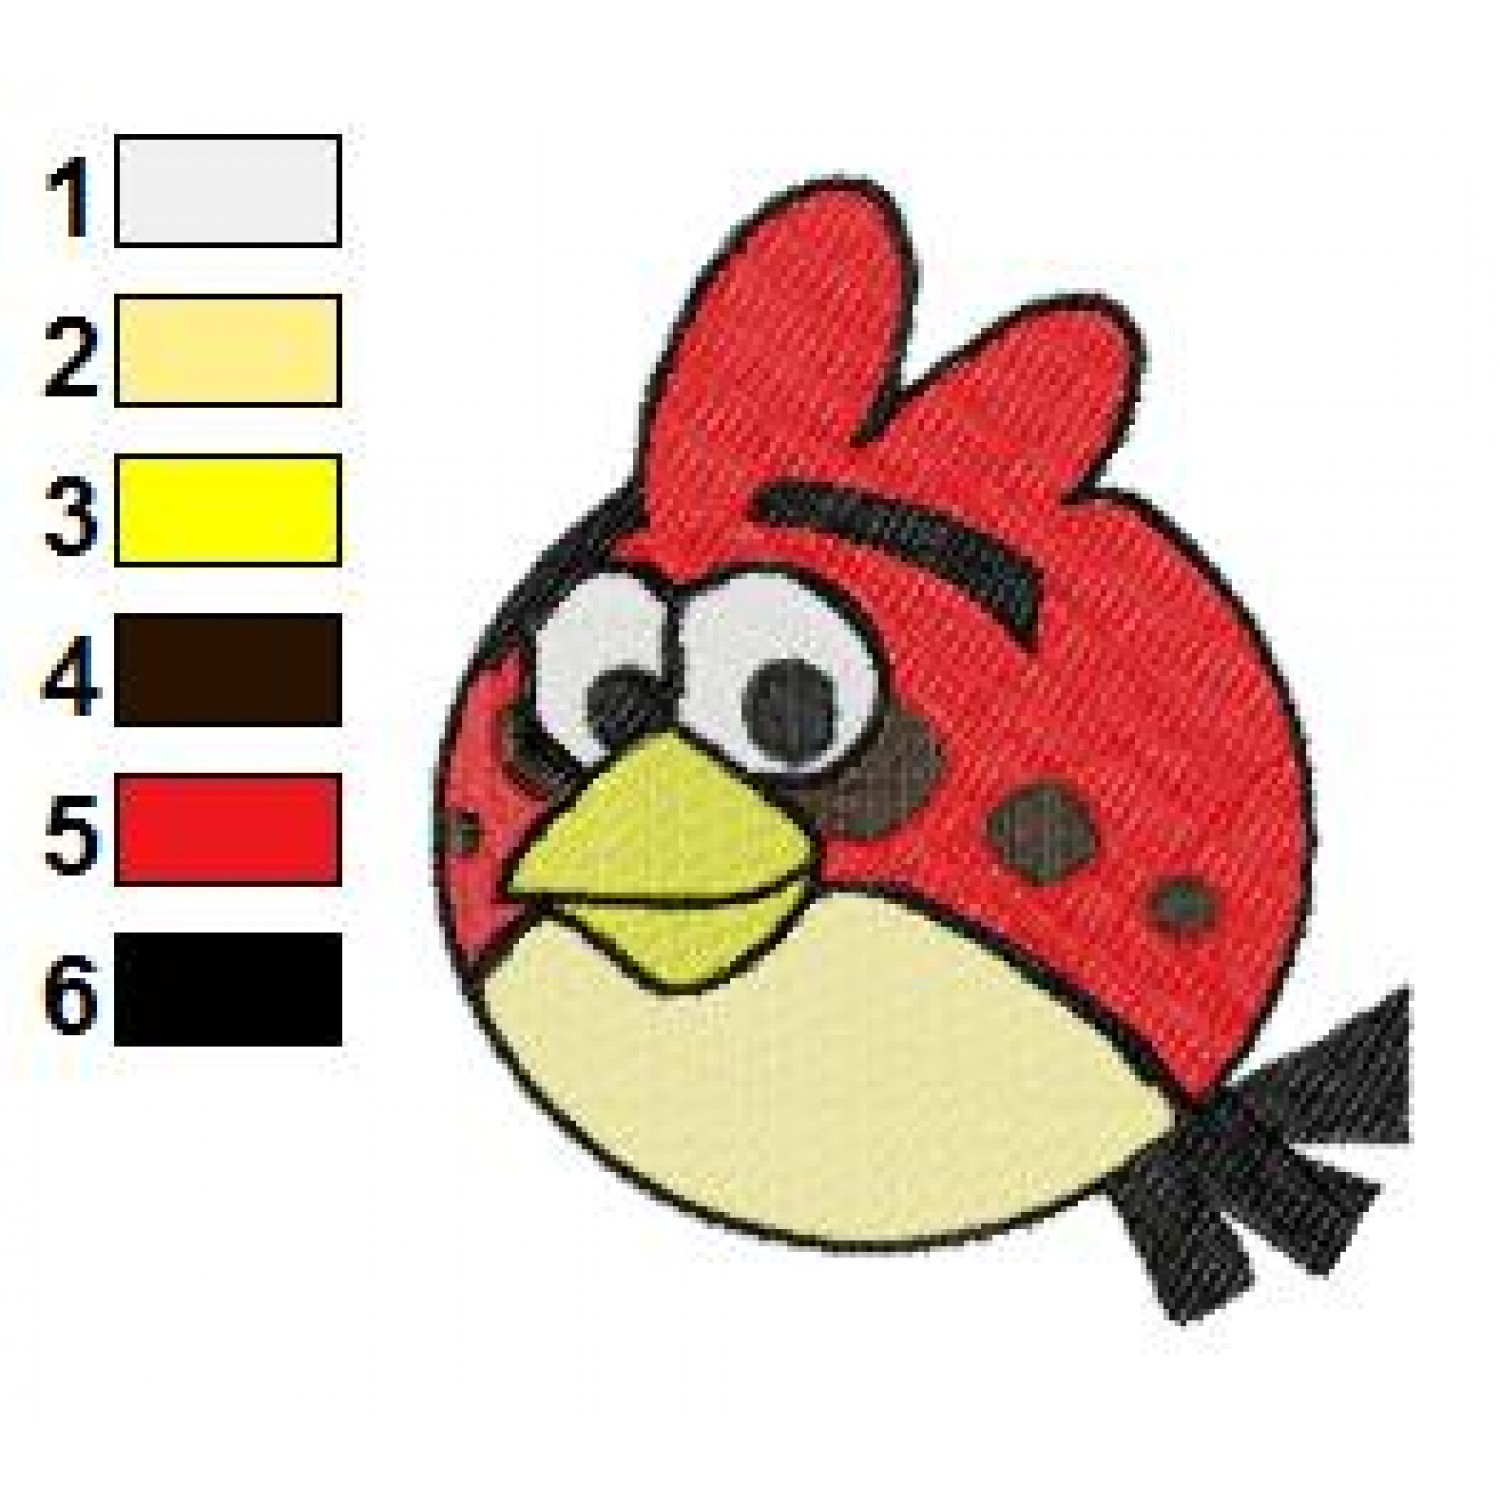 Angry birds space embroidery design 14 for Space embroidery patterns